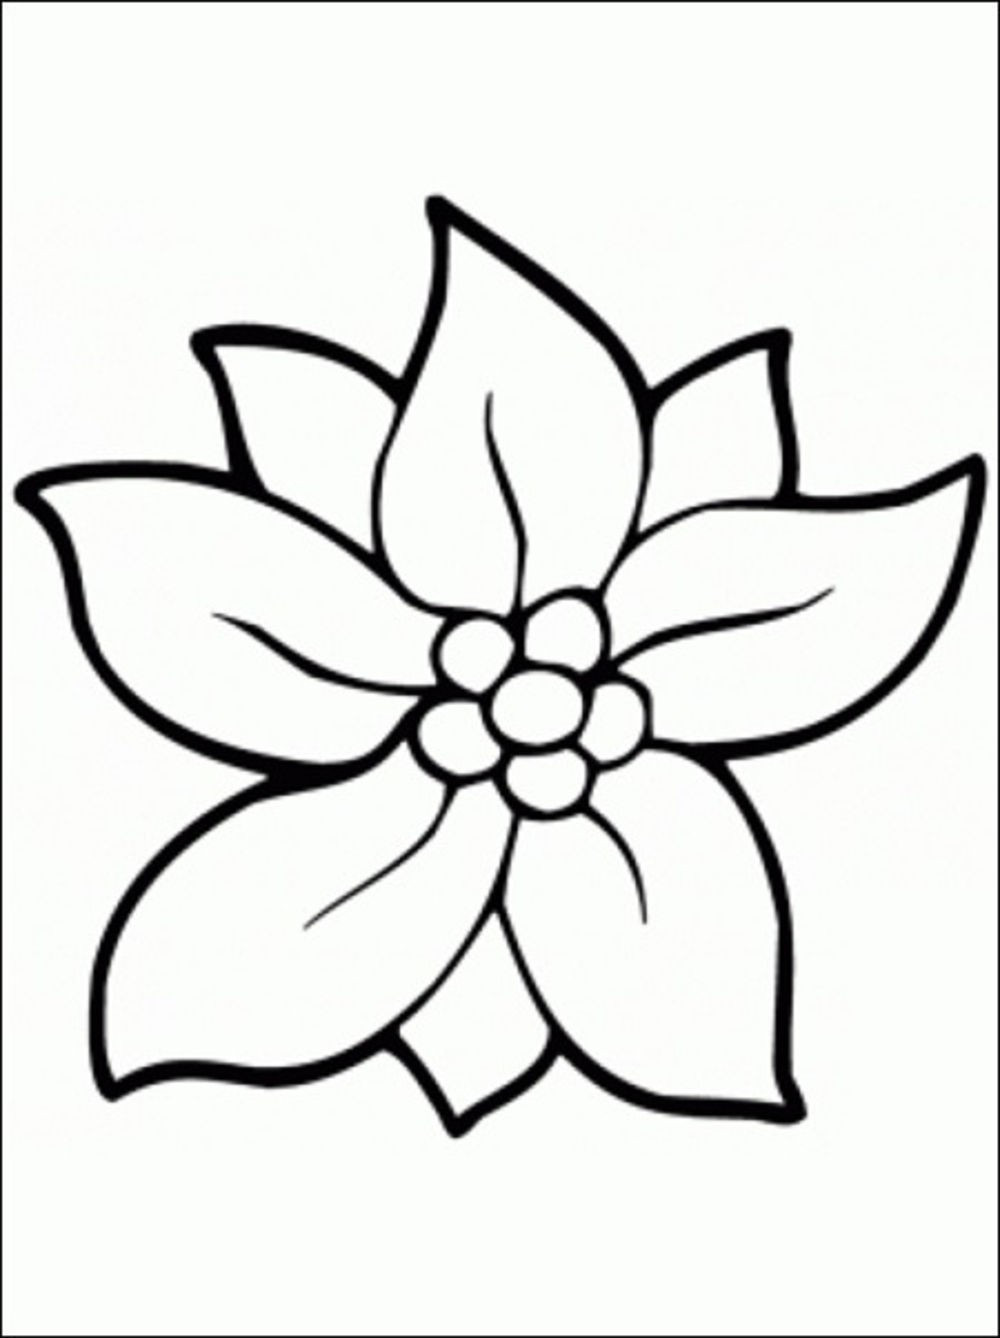 Coloring Pages Of Flowers For Kids  Flower Coloring Pages coloringsuite